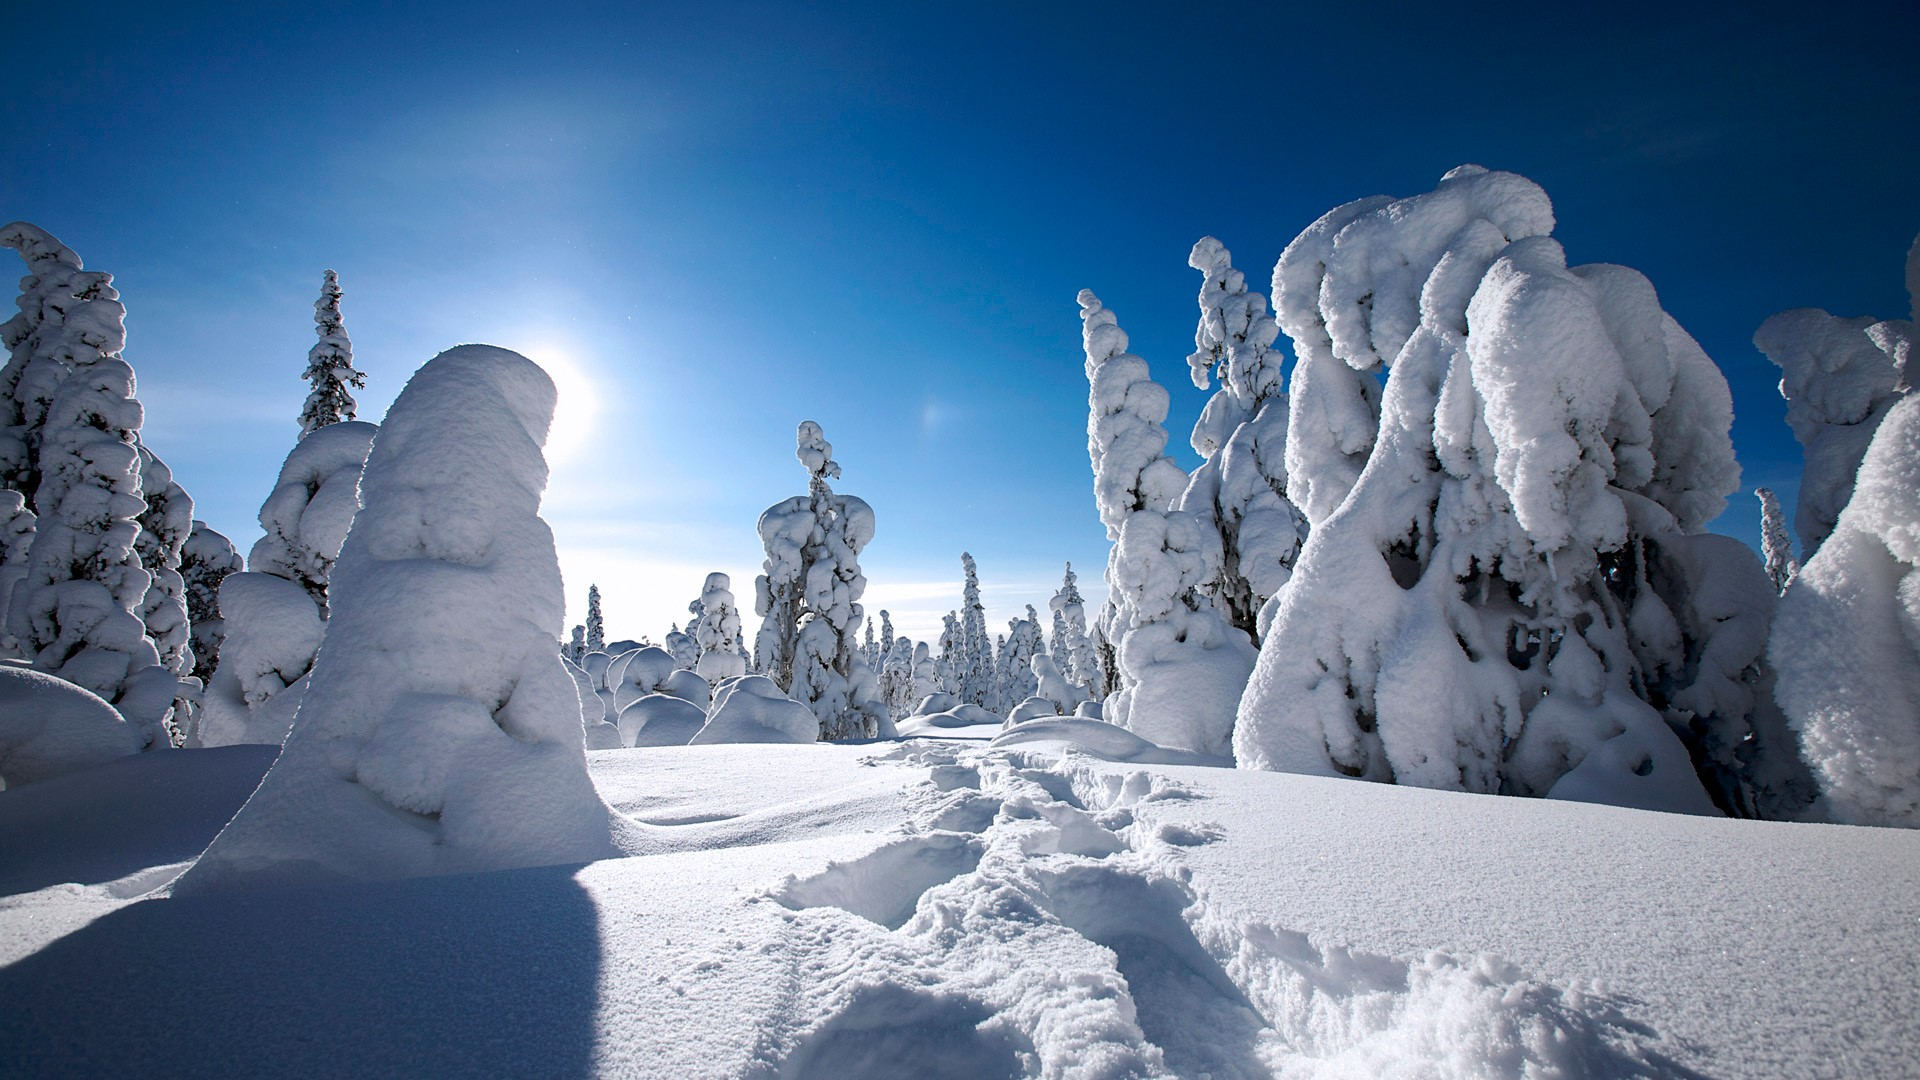 Winter in Finland Wallpapers  HD Wallpapers  ID 9702